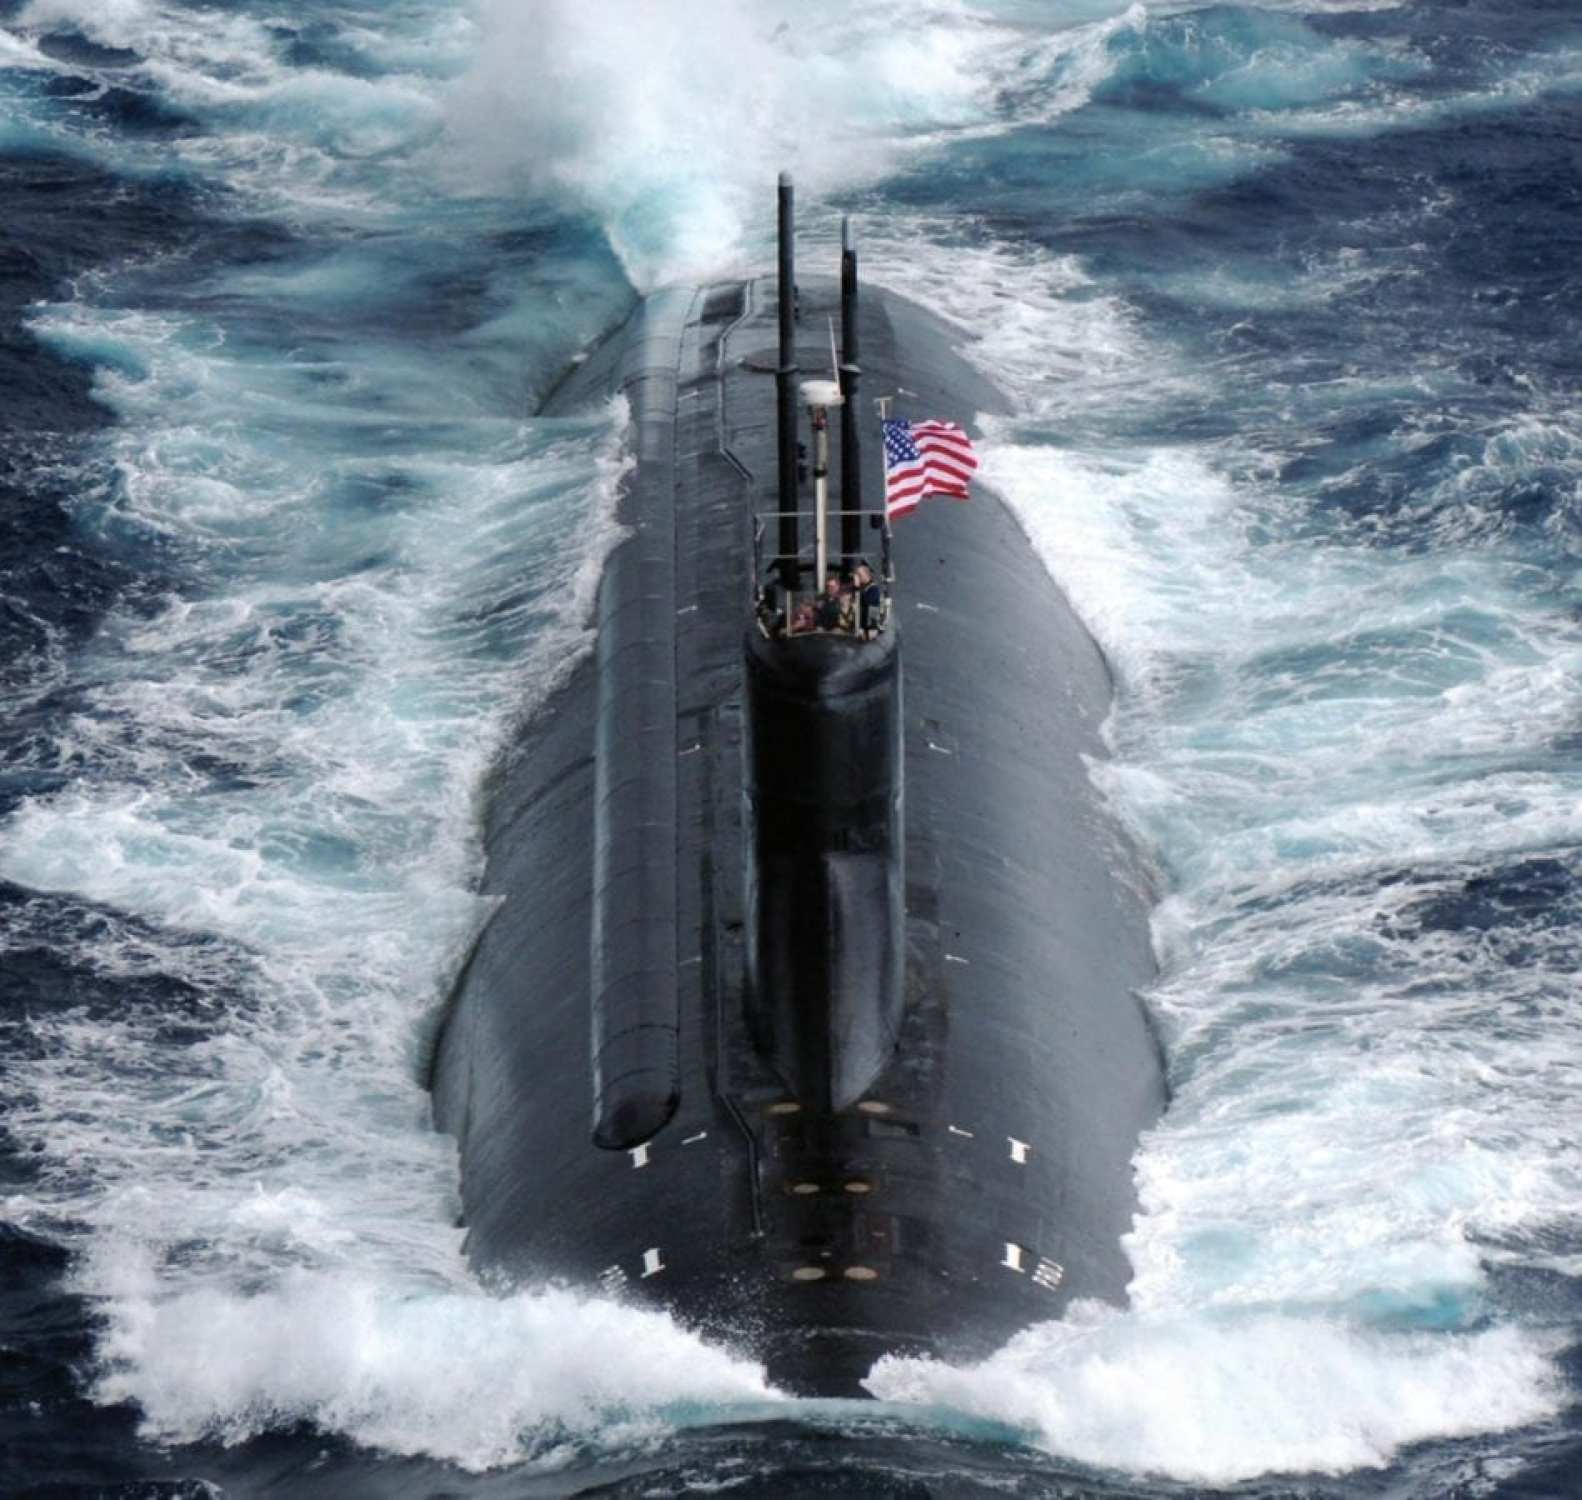 The Seawolf-class fast-attack submarine USS Connecticut (SSN 22) transits the Pacific Ocean during Annual Exercise (ANNUALEX 21G). Only three Seawolf-class submarines were constructed before giving way to the Virginia class.